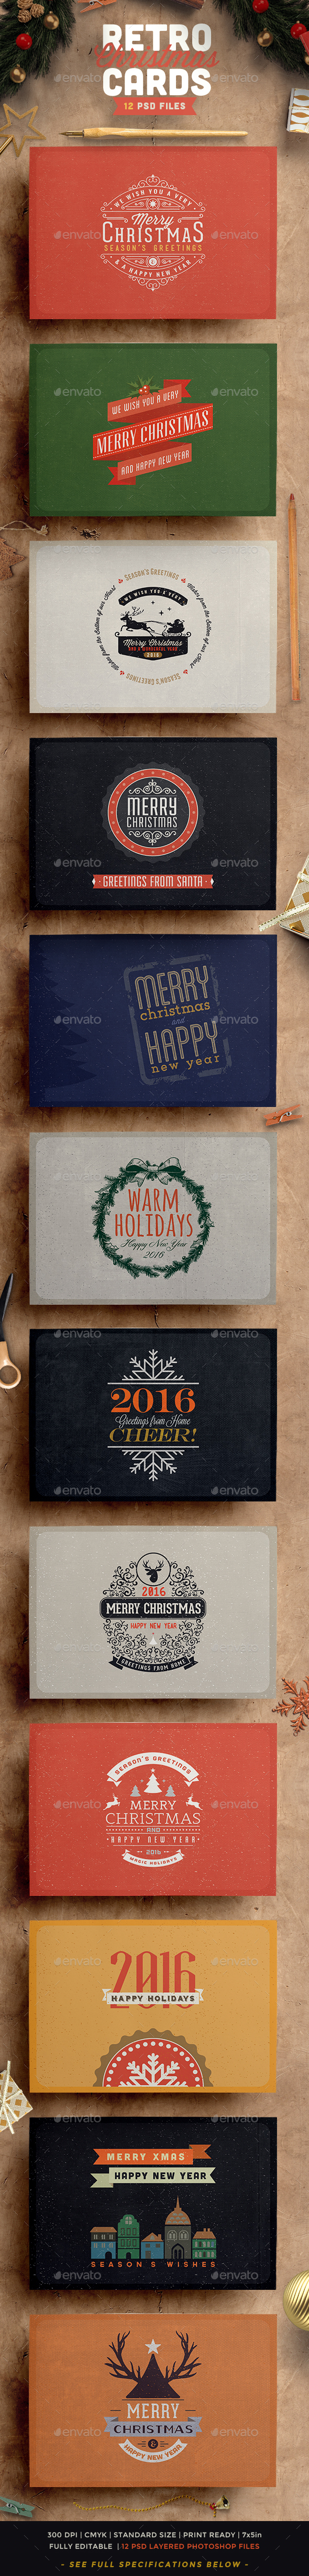 Preview - Retro Vintage Christmas Card Pack